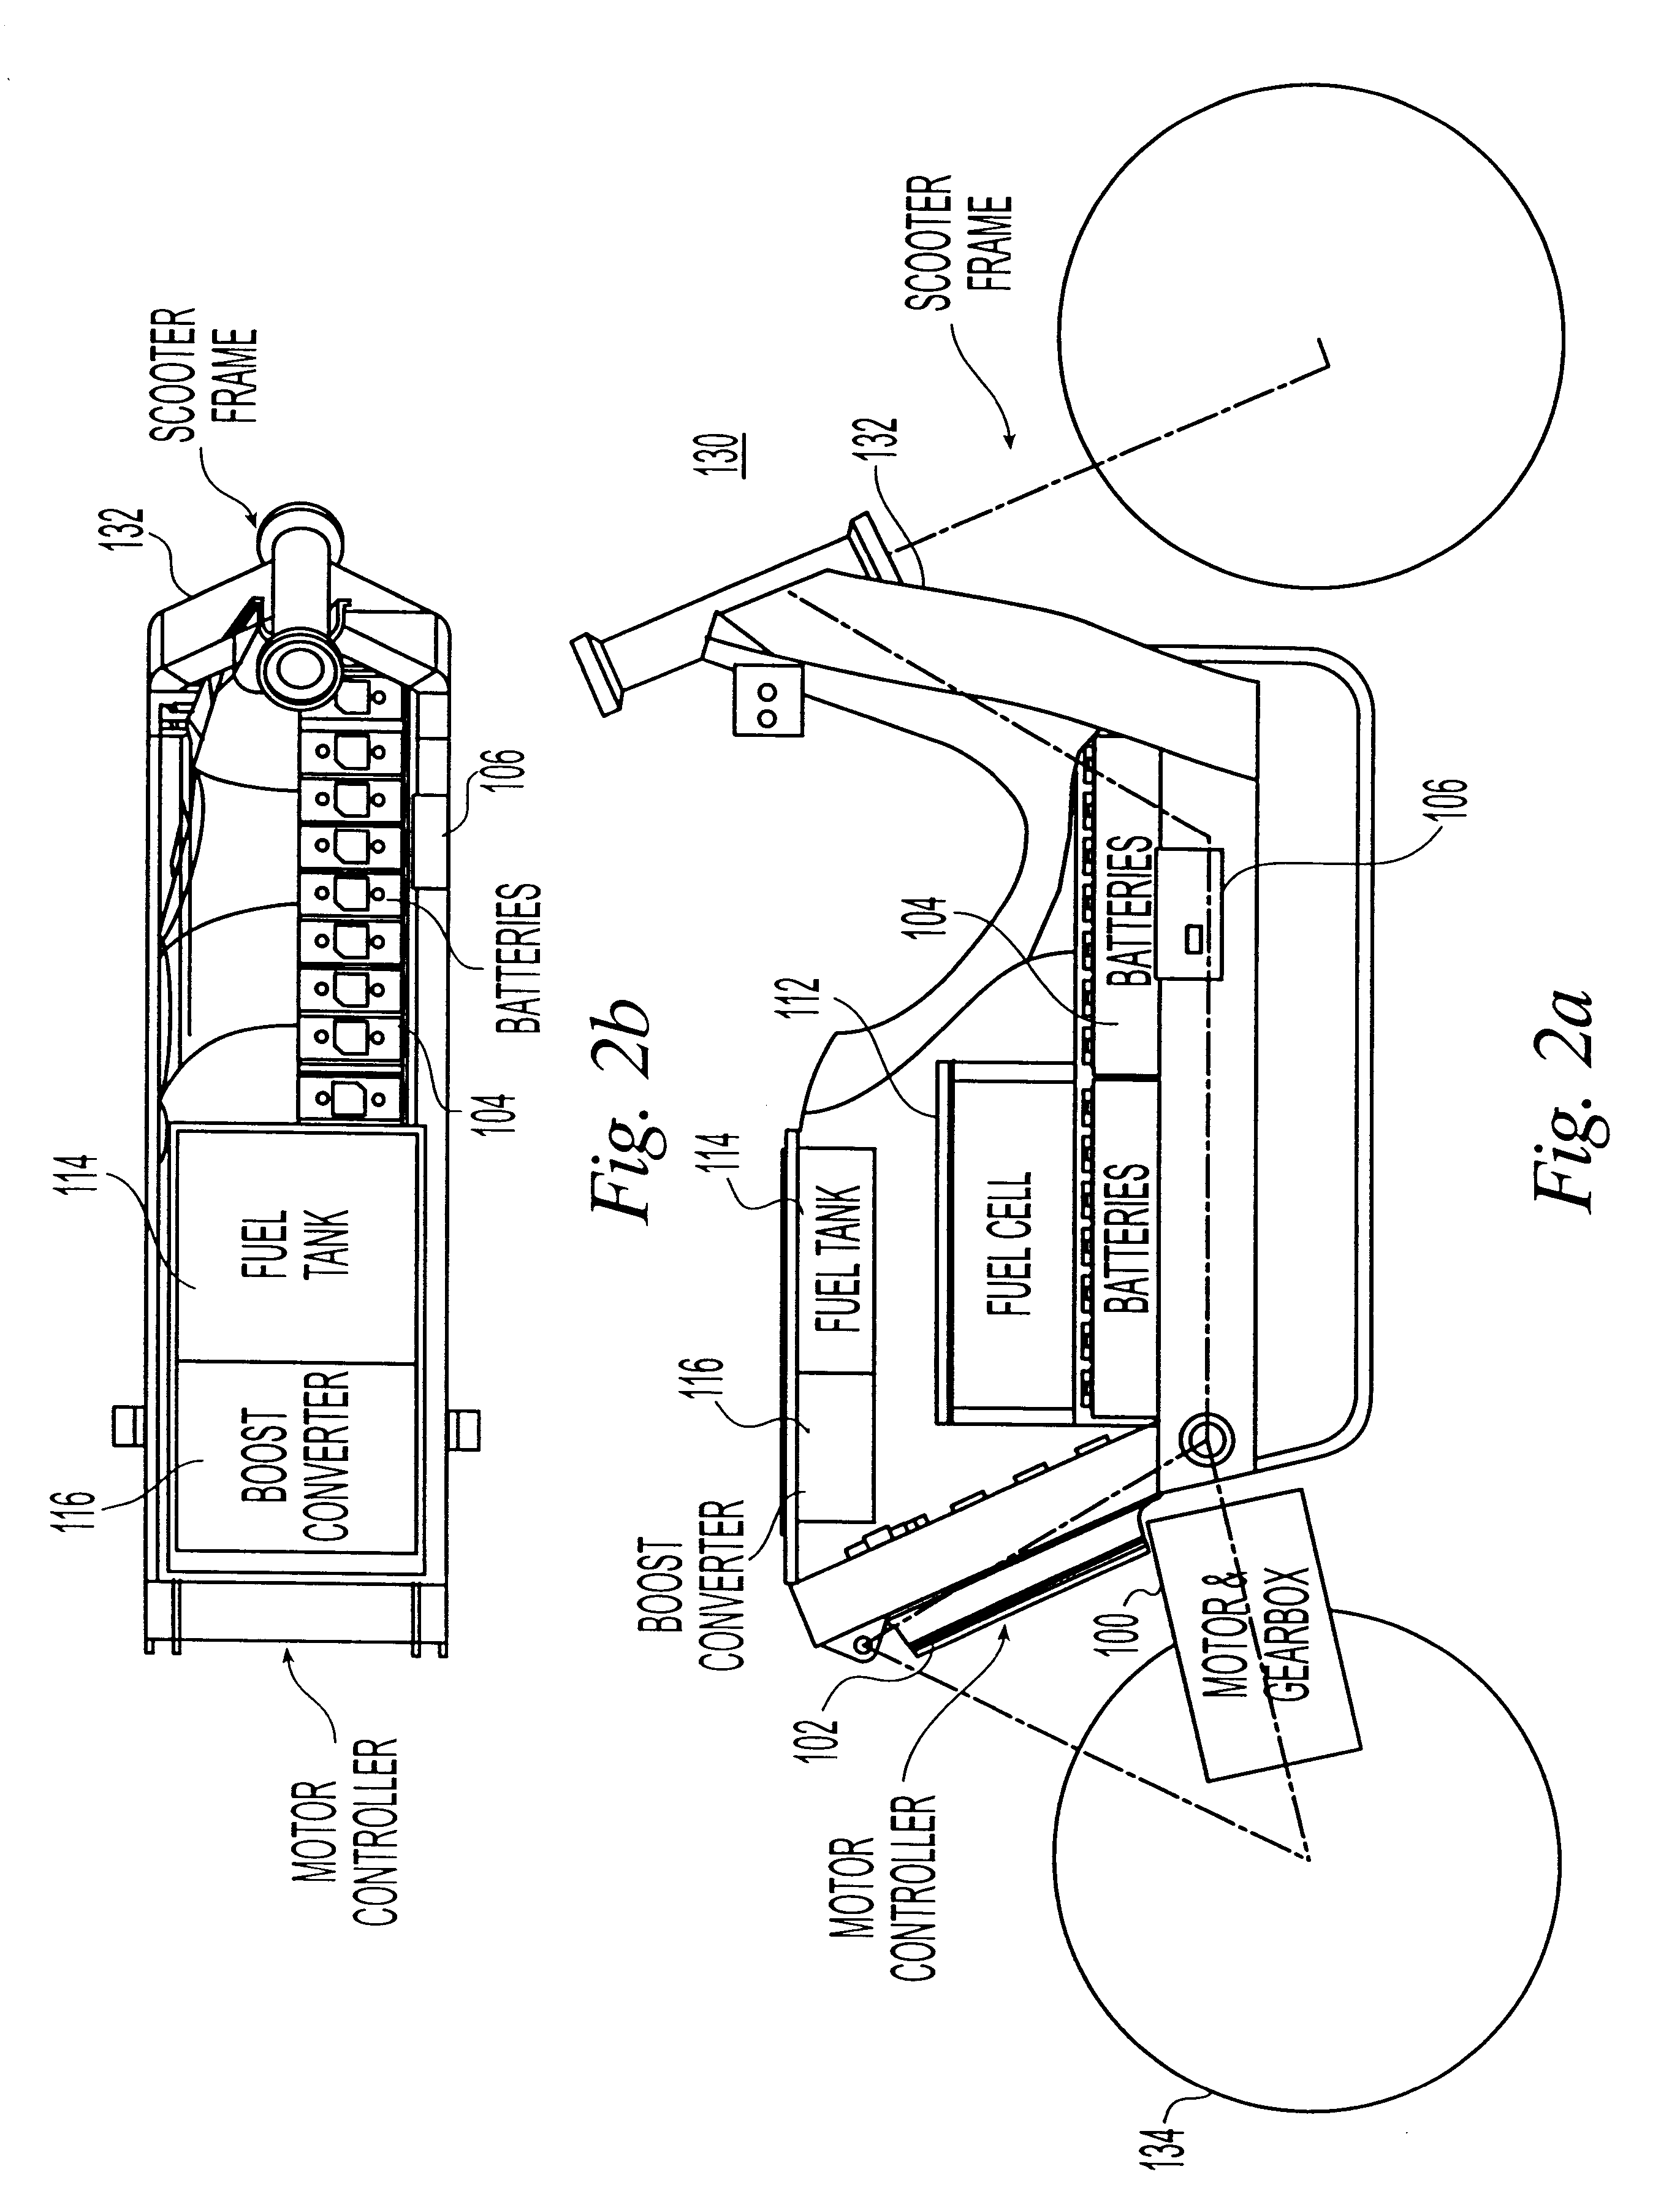 patent us6326765 - electric scooter with on-board charging system